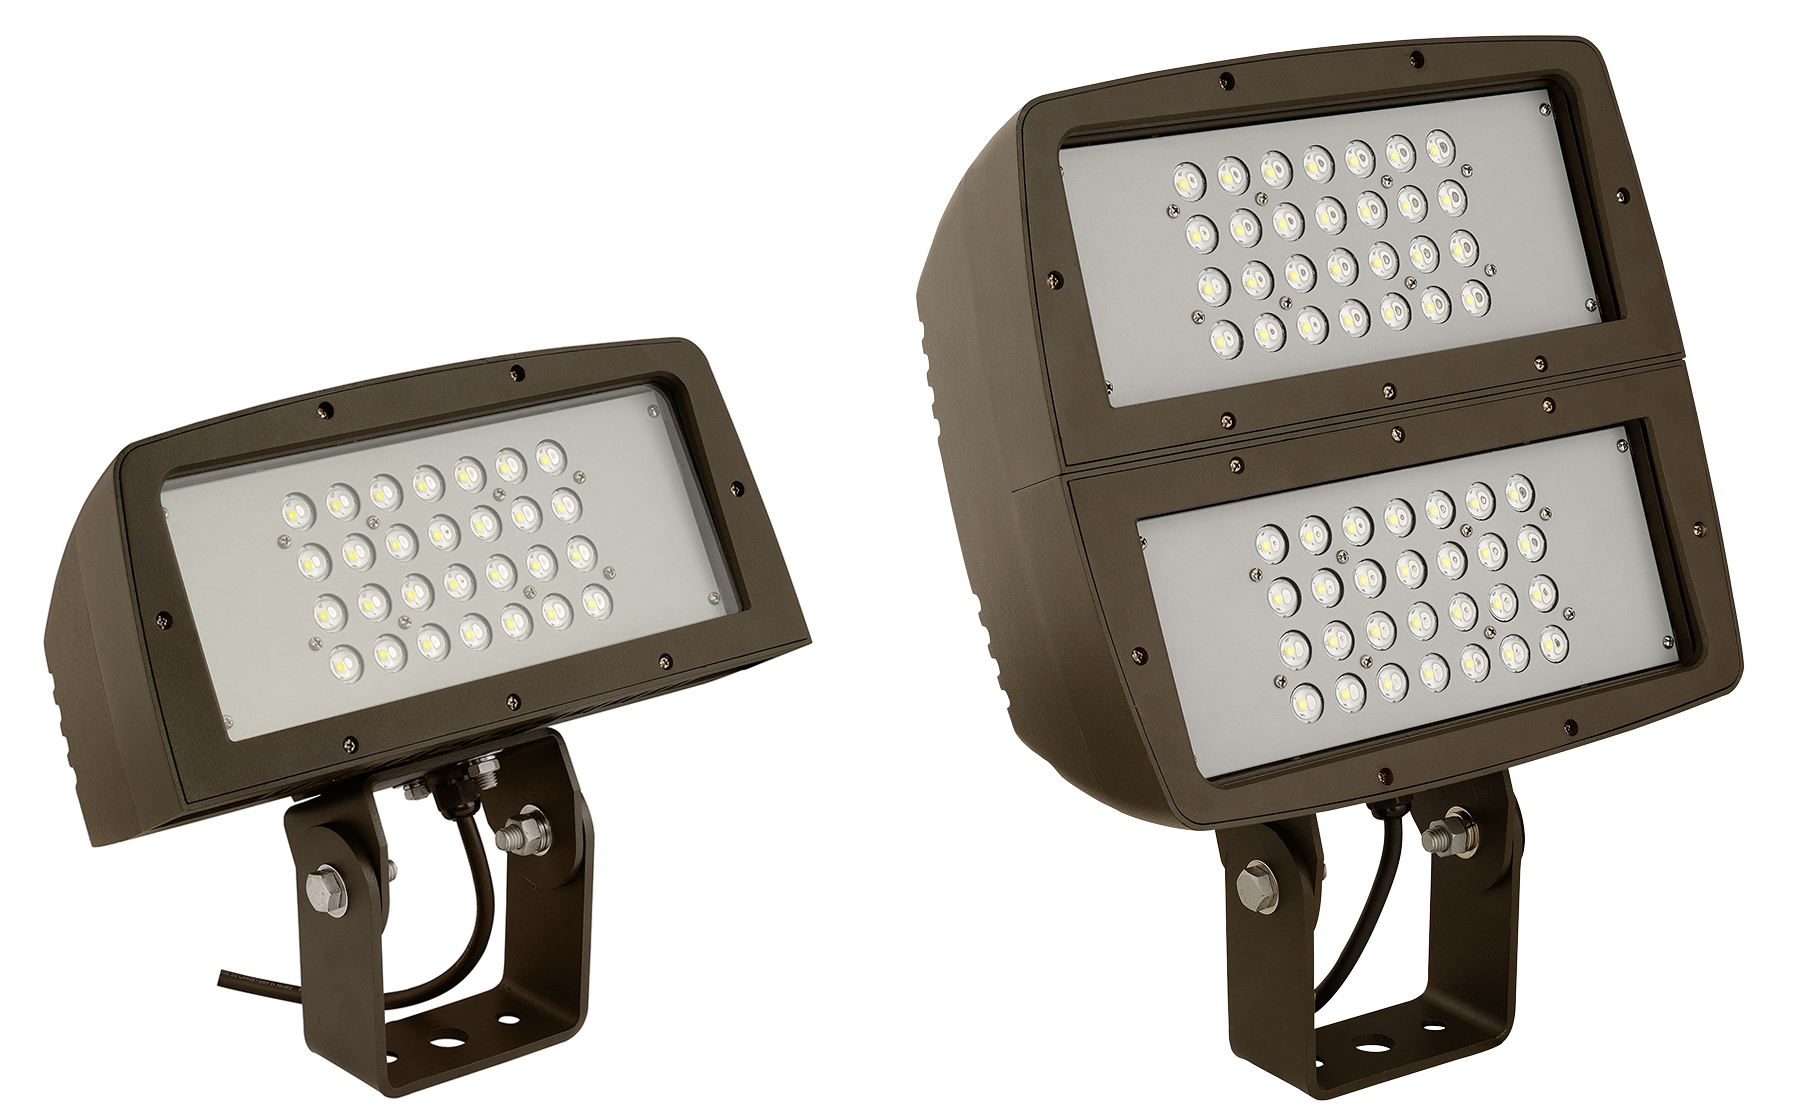 Hubbell Outdoor Lighting Expands Led Floodlight Offering